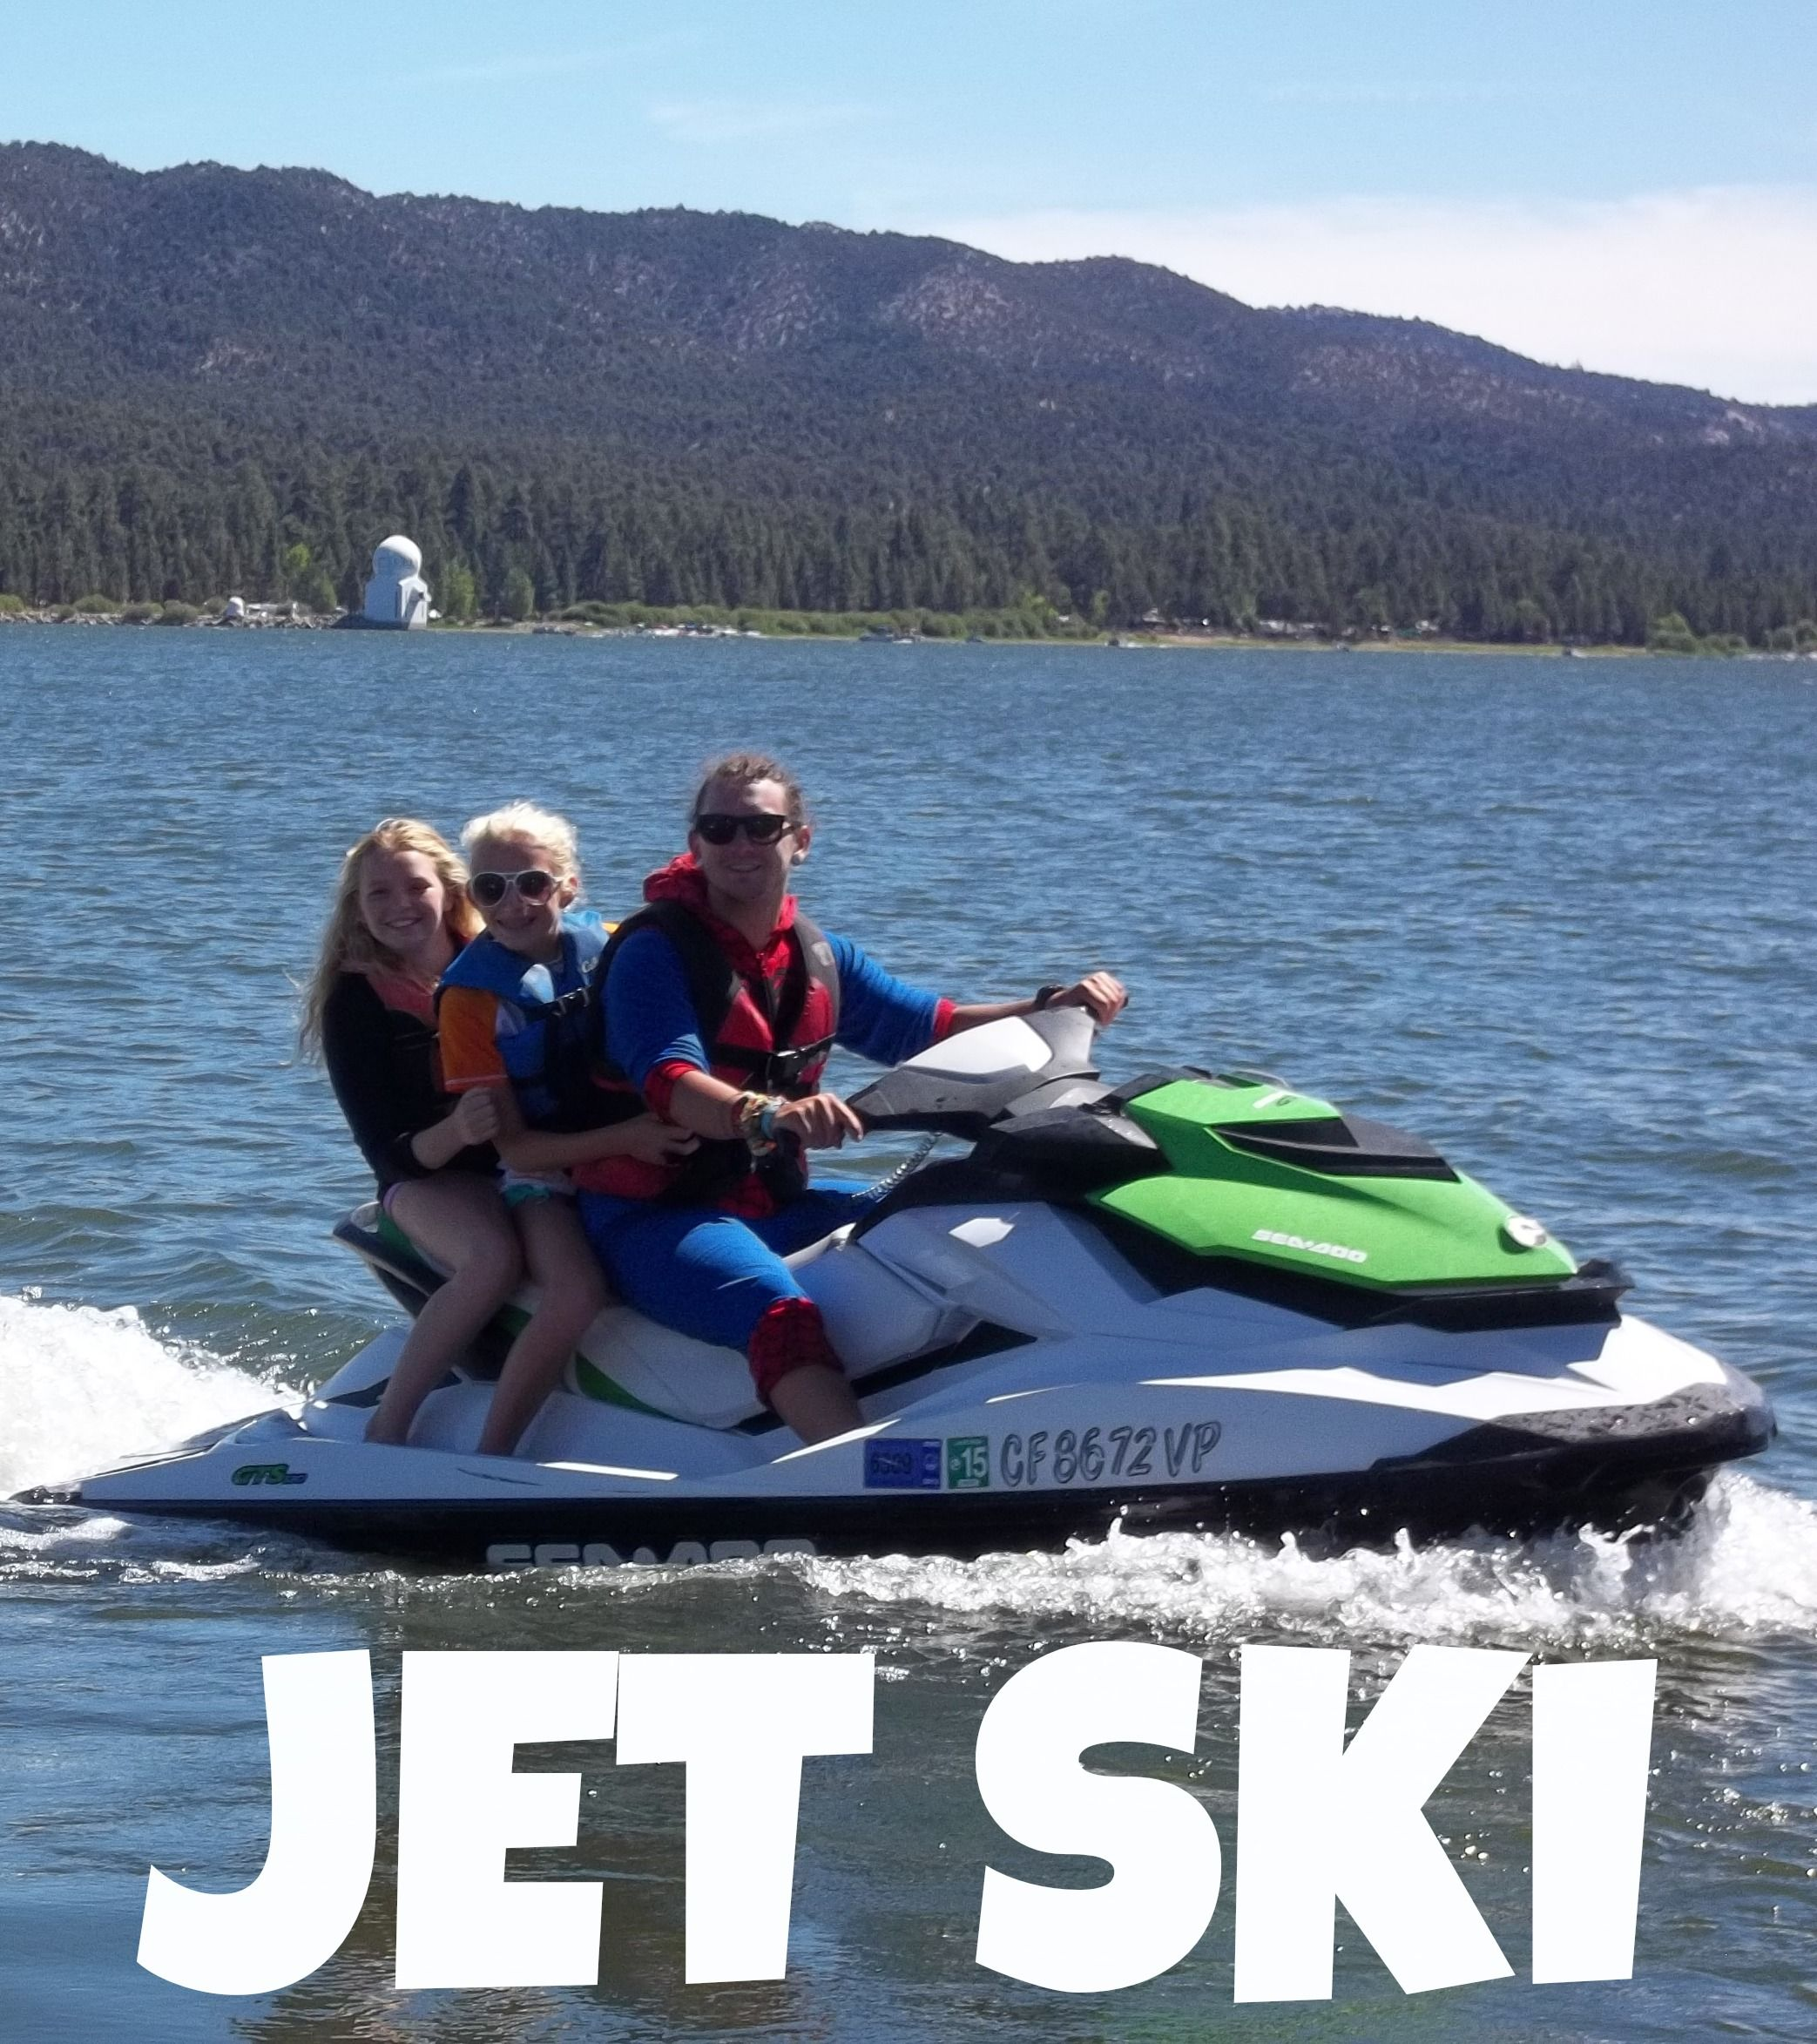 Jet Ski Jet Skiing Is An Activity At Pali Adventures Summercamp On Big Bear Lake Http Www Pa Summer Camp Activities Camp Overnight Overnight Summer Camps